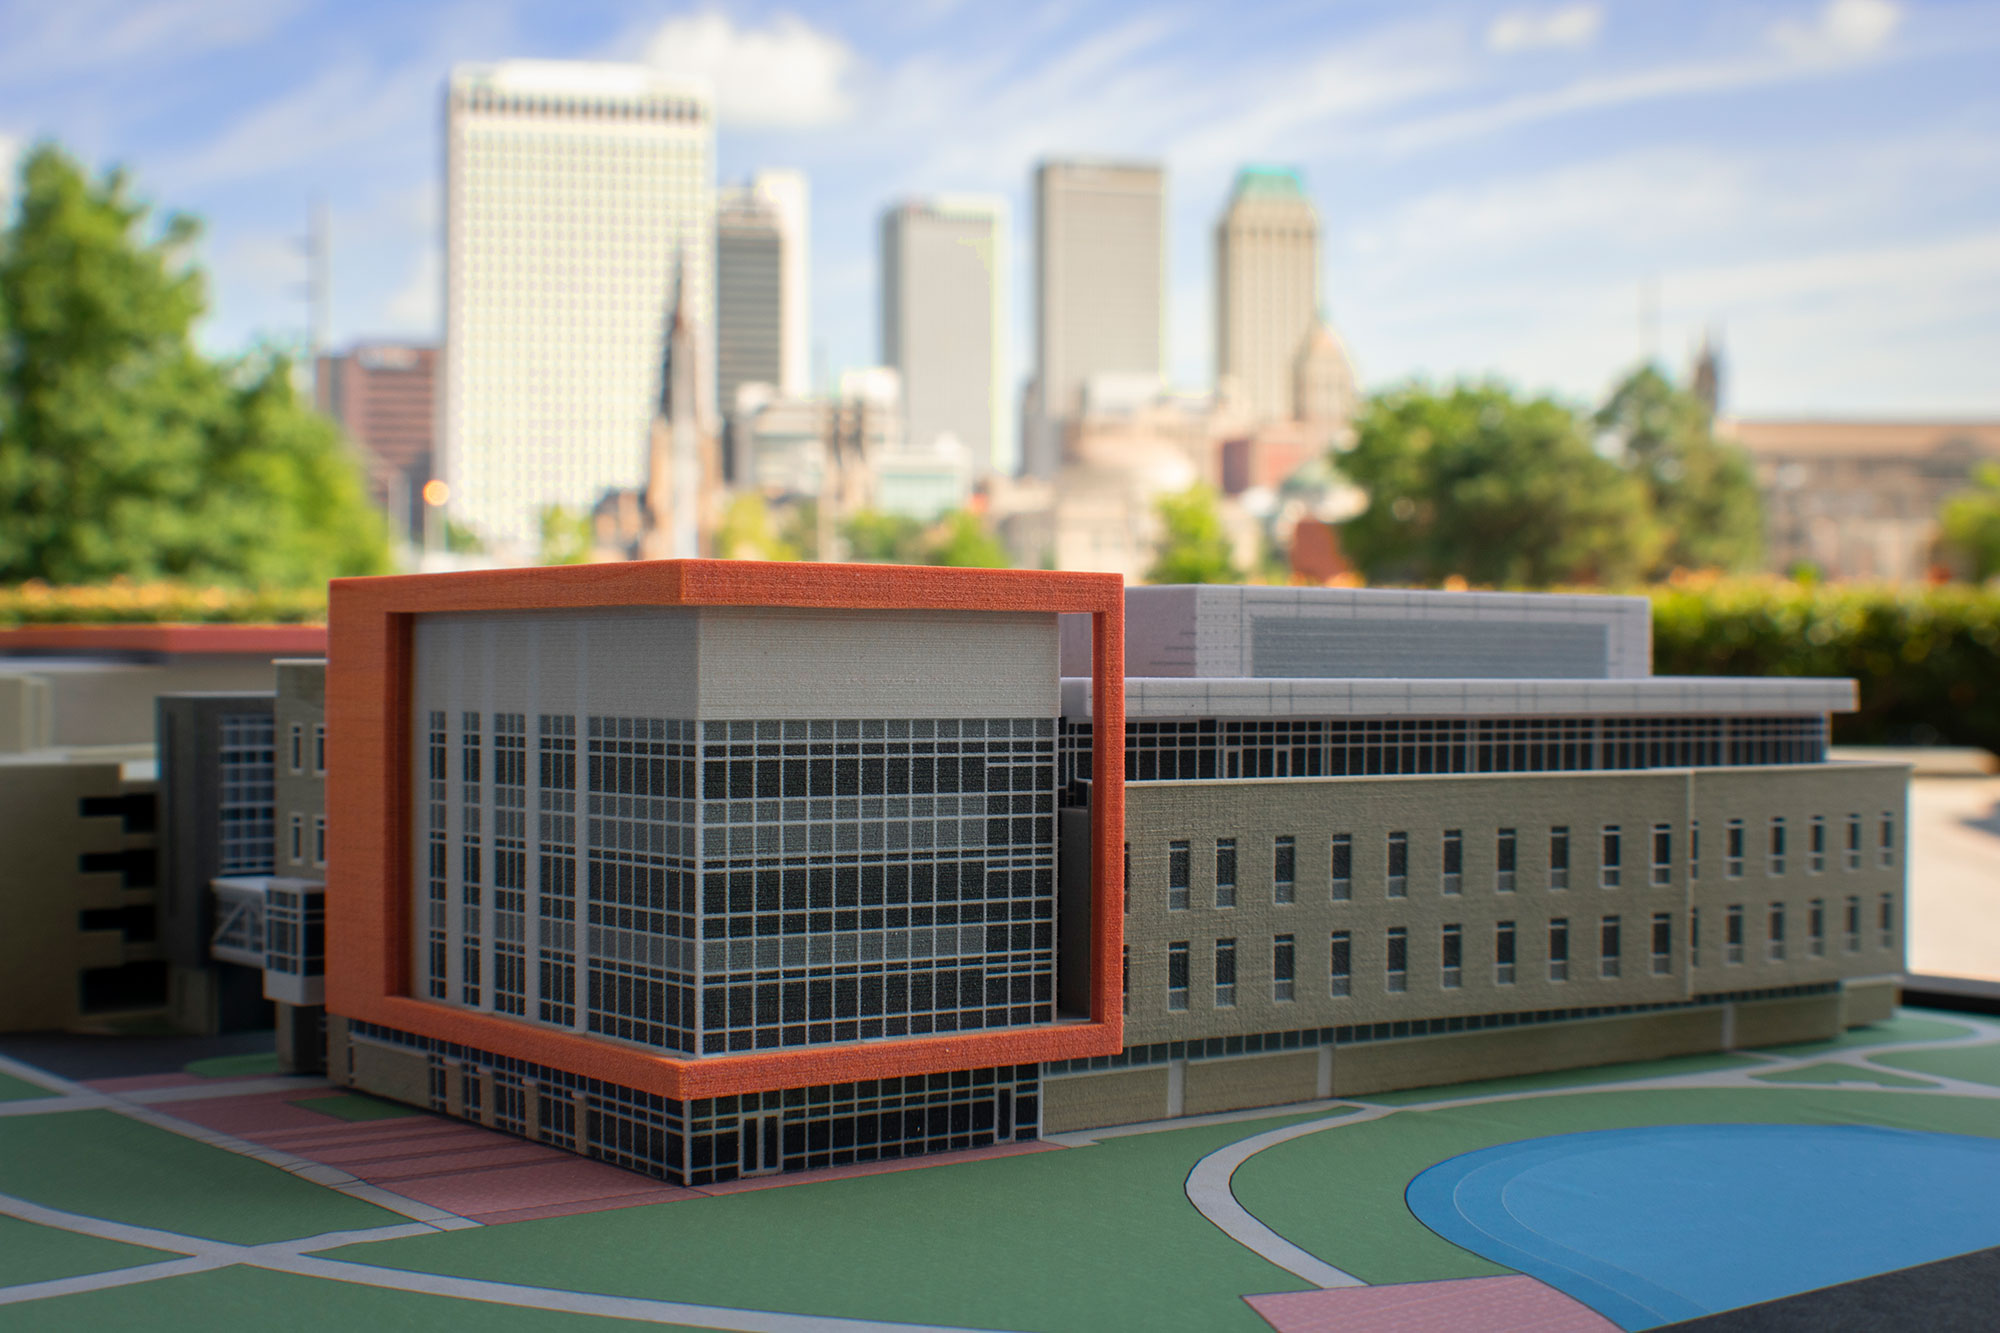 A model of the new building provides a 3D visualization.